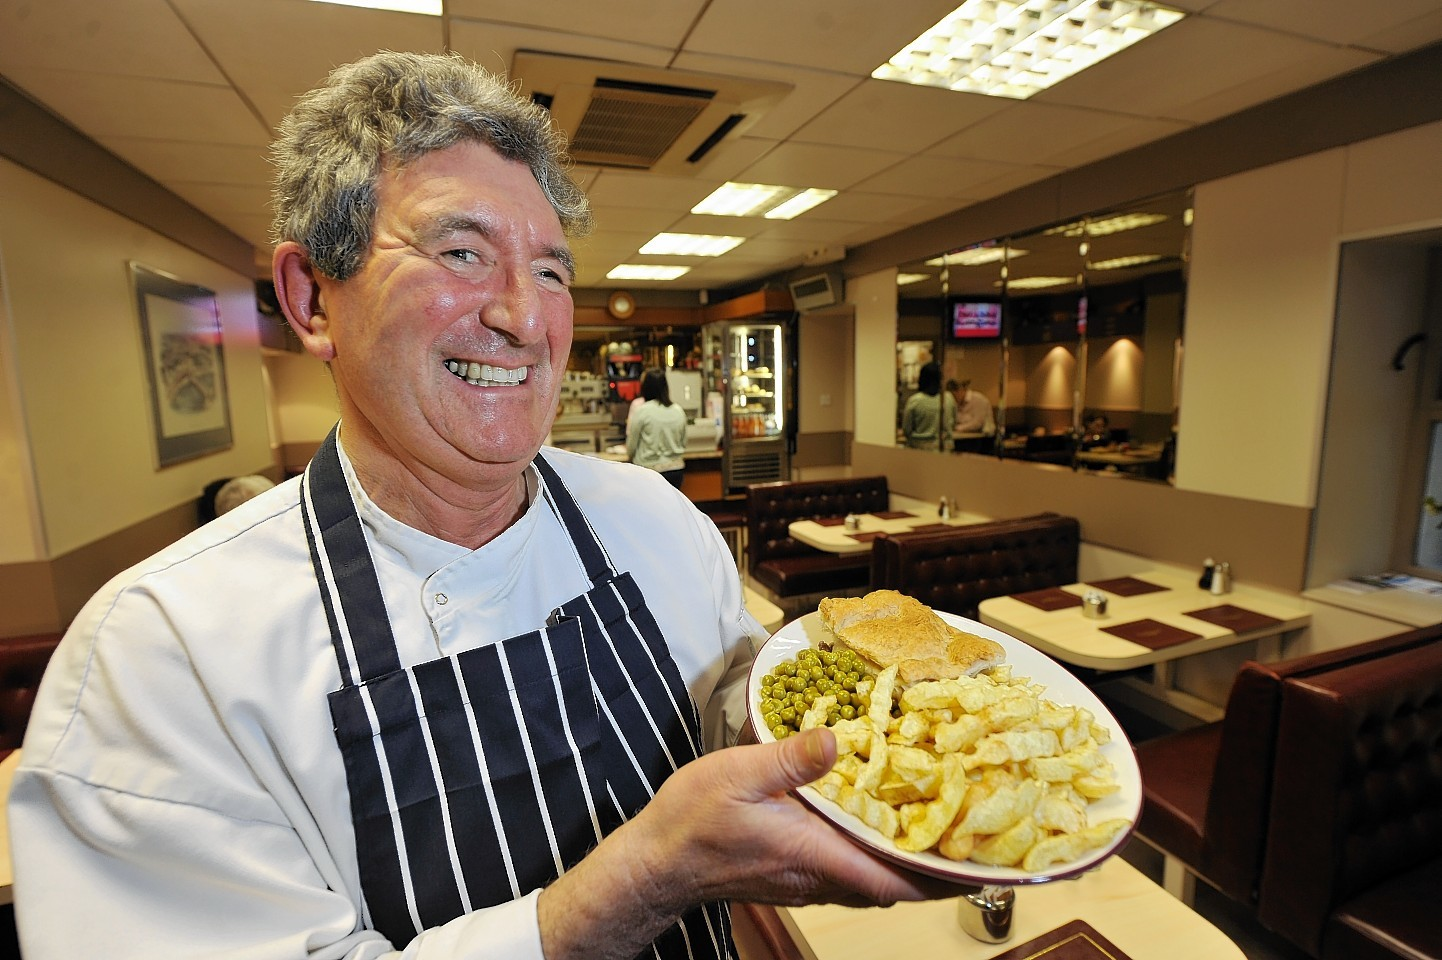 Brian Lipton, of the Castle Restaurant, with his famous steak pie and chips